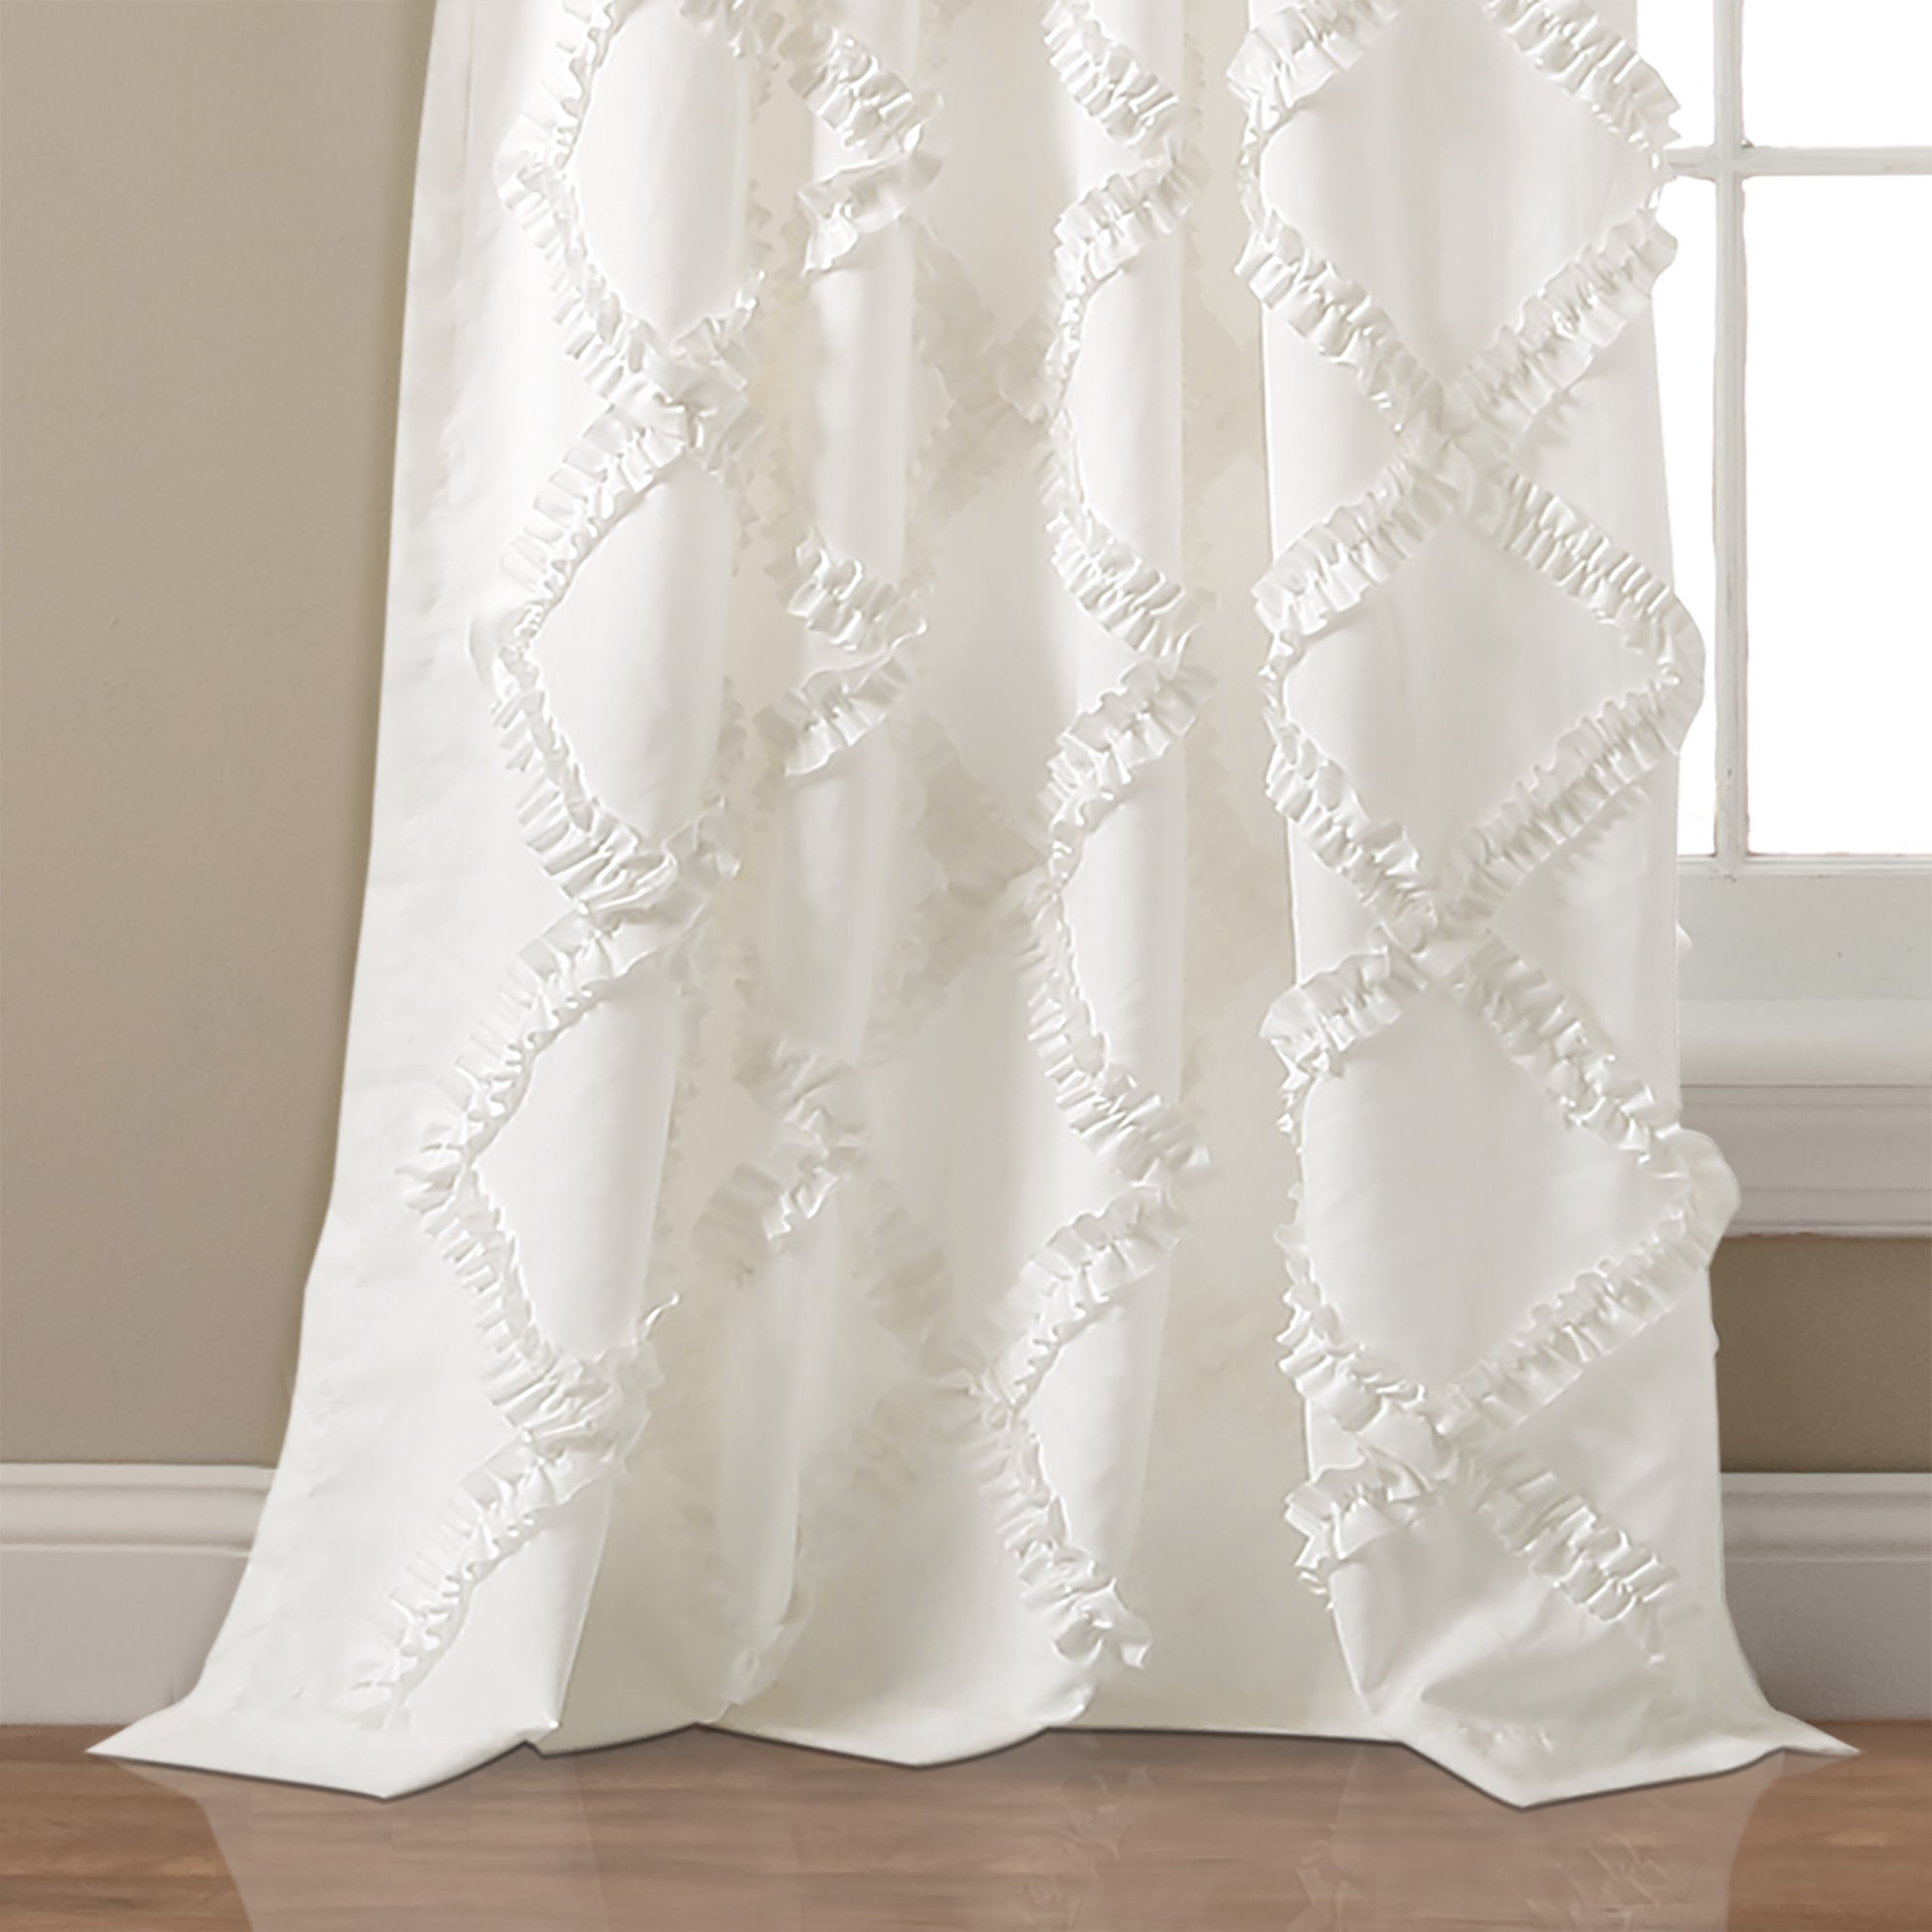 Ruffle Diamond Curtain Panel Pairs For Most Recent Lush Decor Ruffle Diamond Curtain Panel Pair (Gallery 9 of 20)